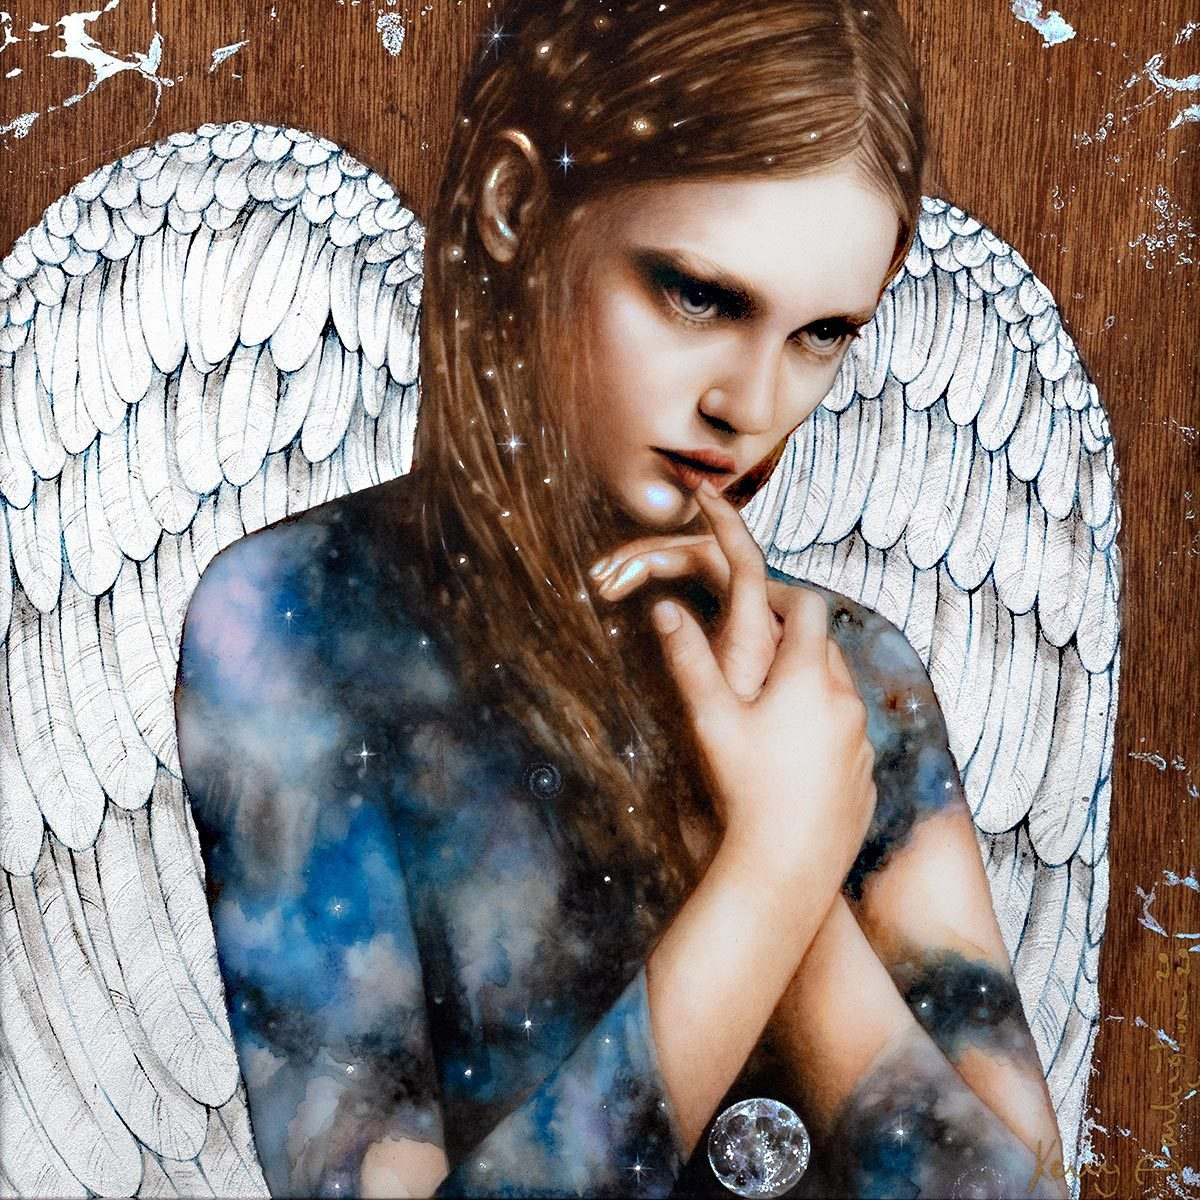 Cosmic Angel - Original Kerry Darlington Framed